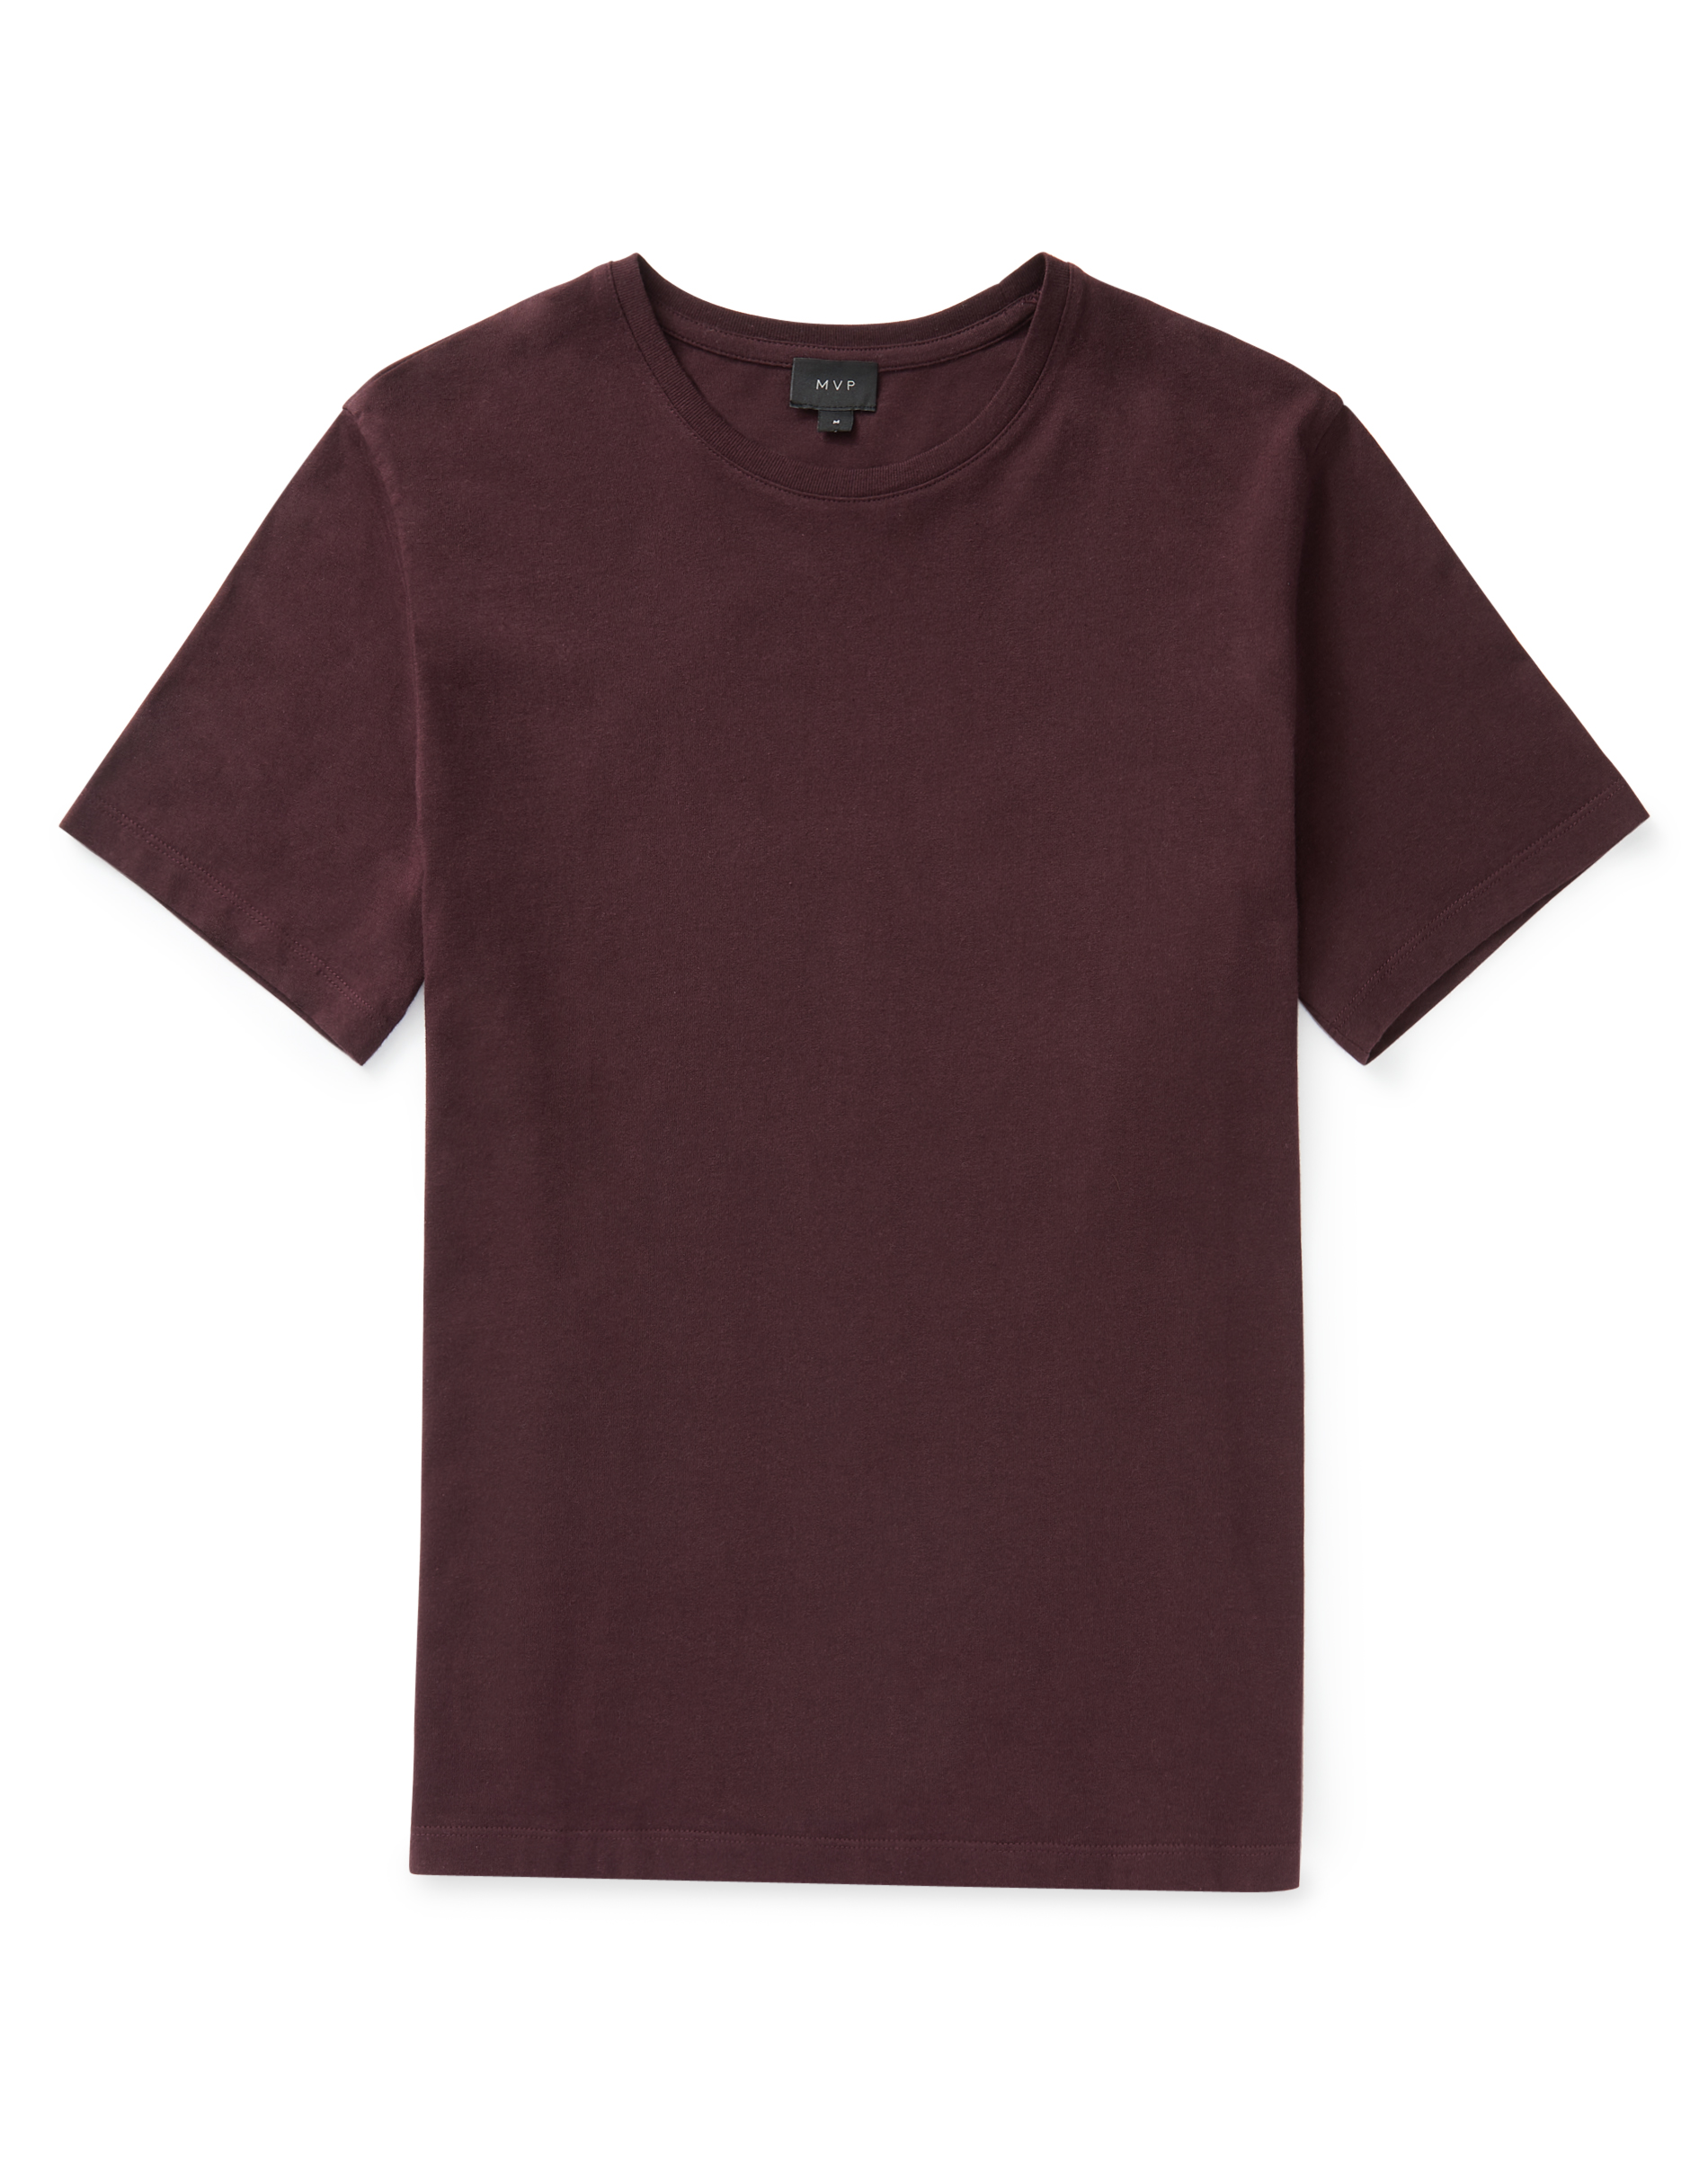 MVP Burgundy Ashfield Crew Neck T-shirt